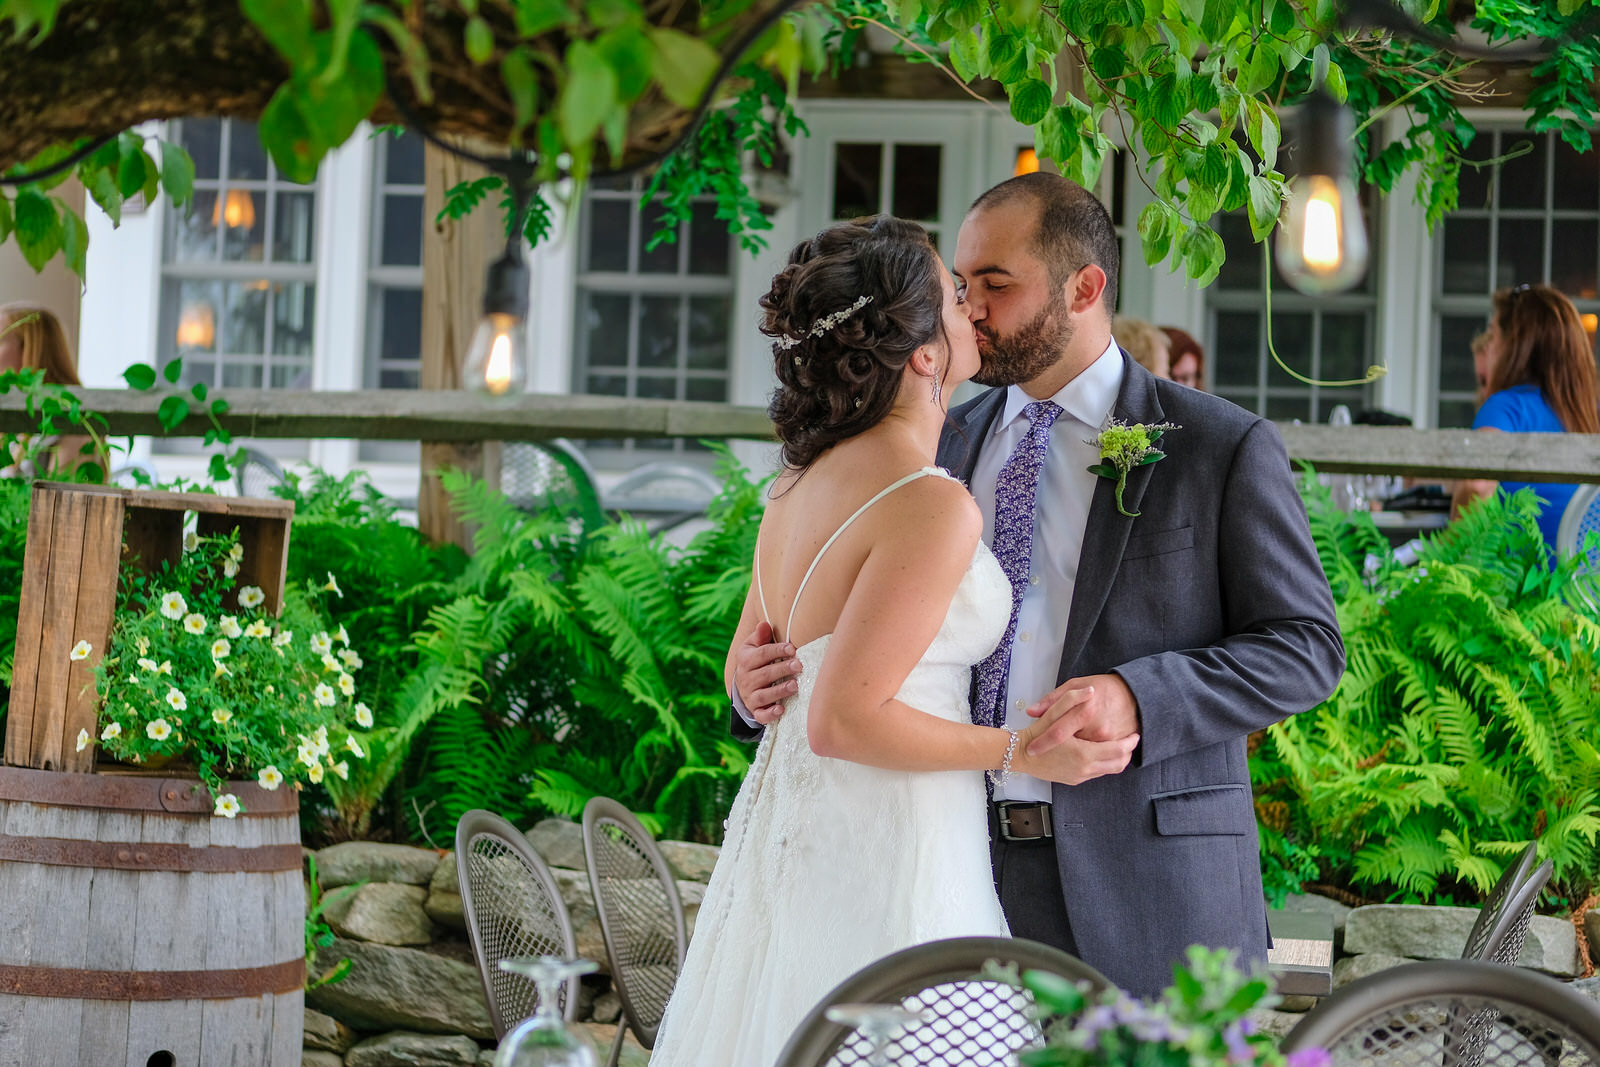 nashoba-valley-winery-wedding-photography-844.jpg